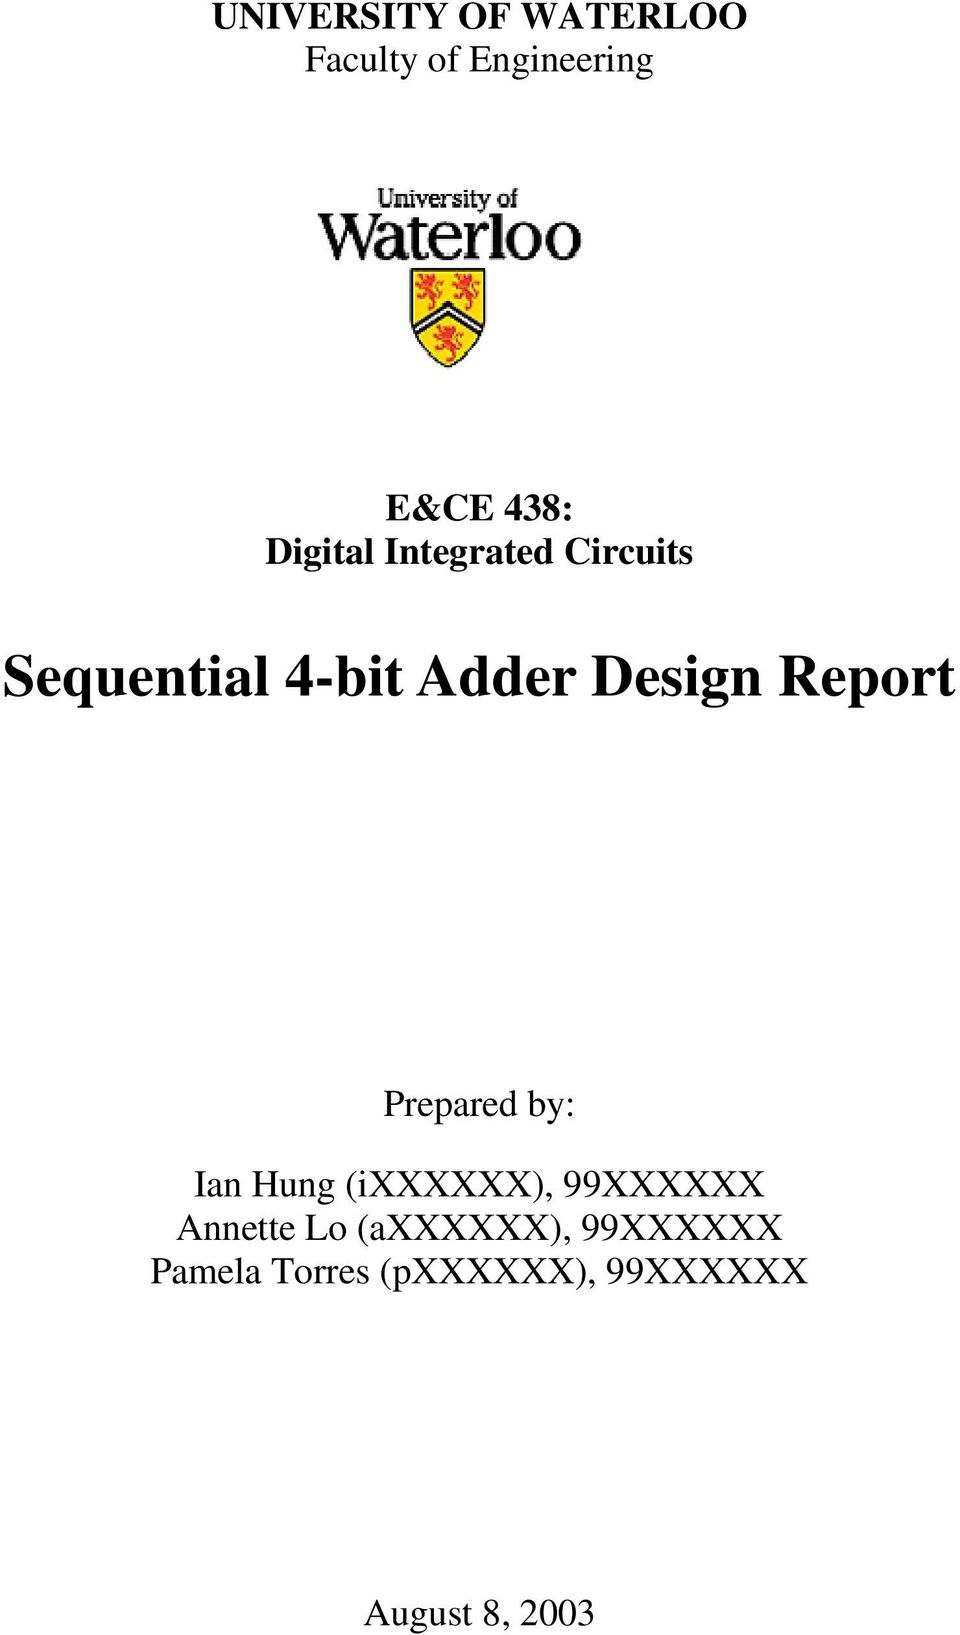 Report Prepared by: Ian Hung (ixxxxxx), 99XXXXXX Annette Lo